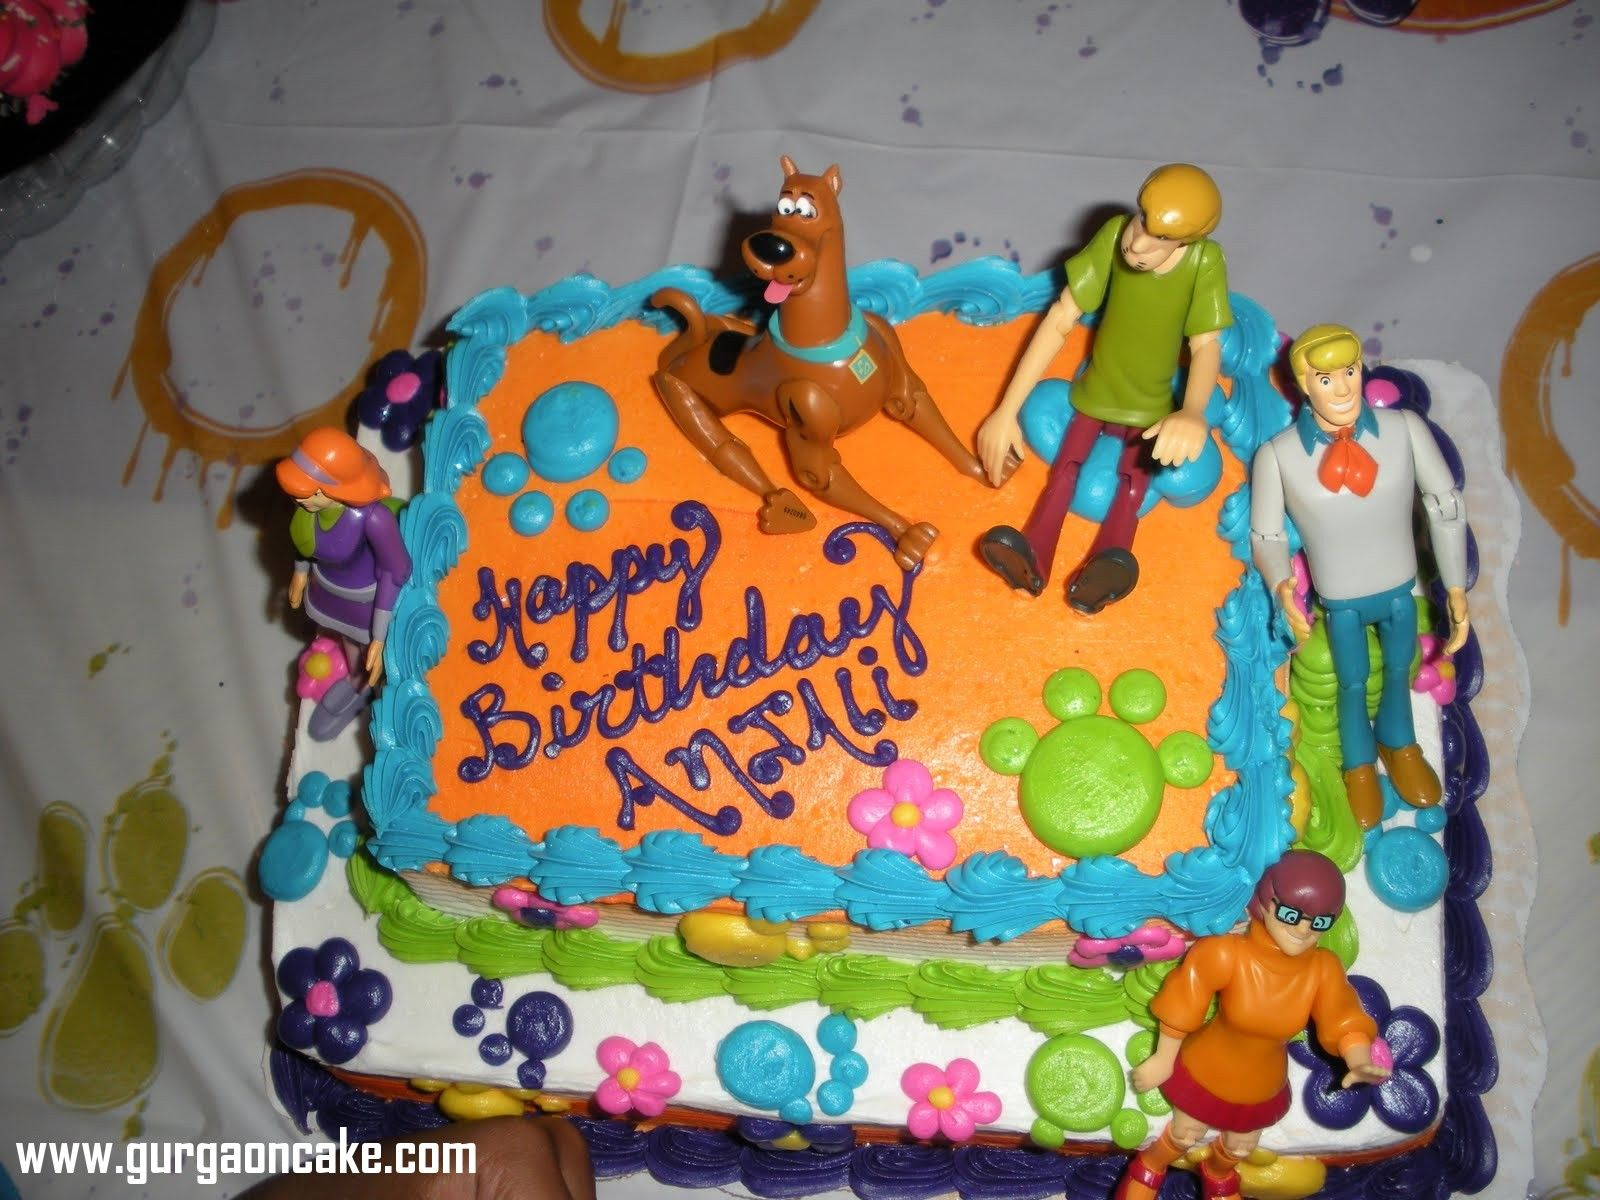 Scooby Doo Cakes At Walmart For Such A Cute